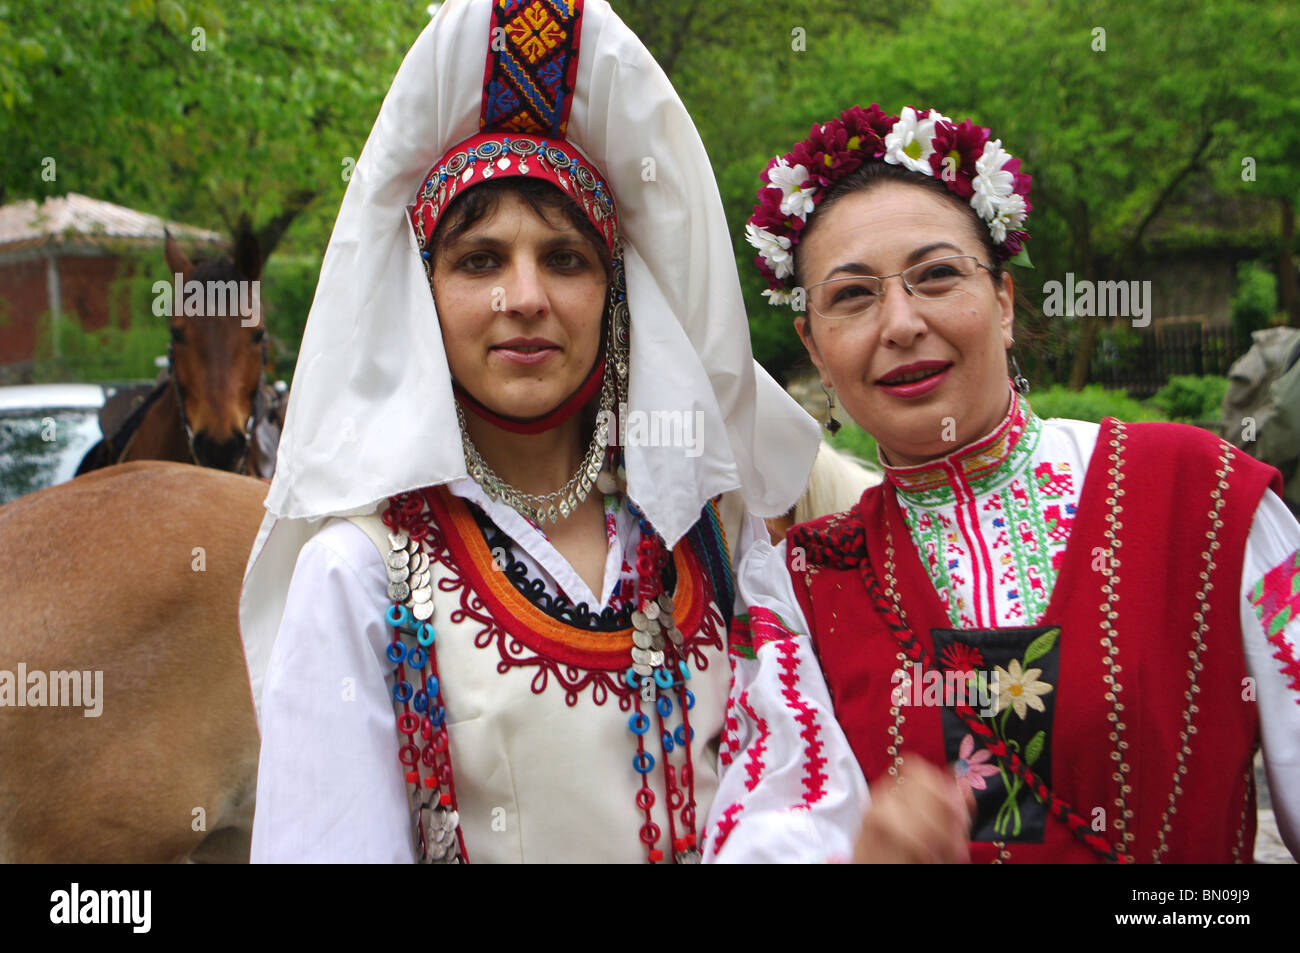 Women's Costumes from Gabrovo, Bulgaria. - Stock Image